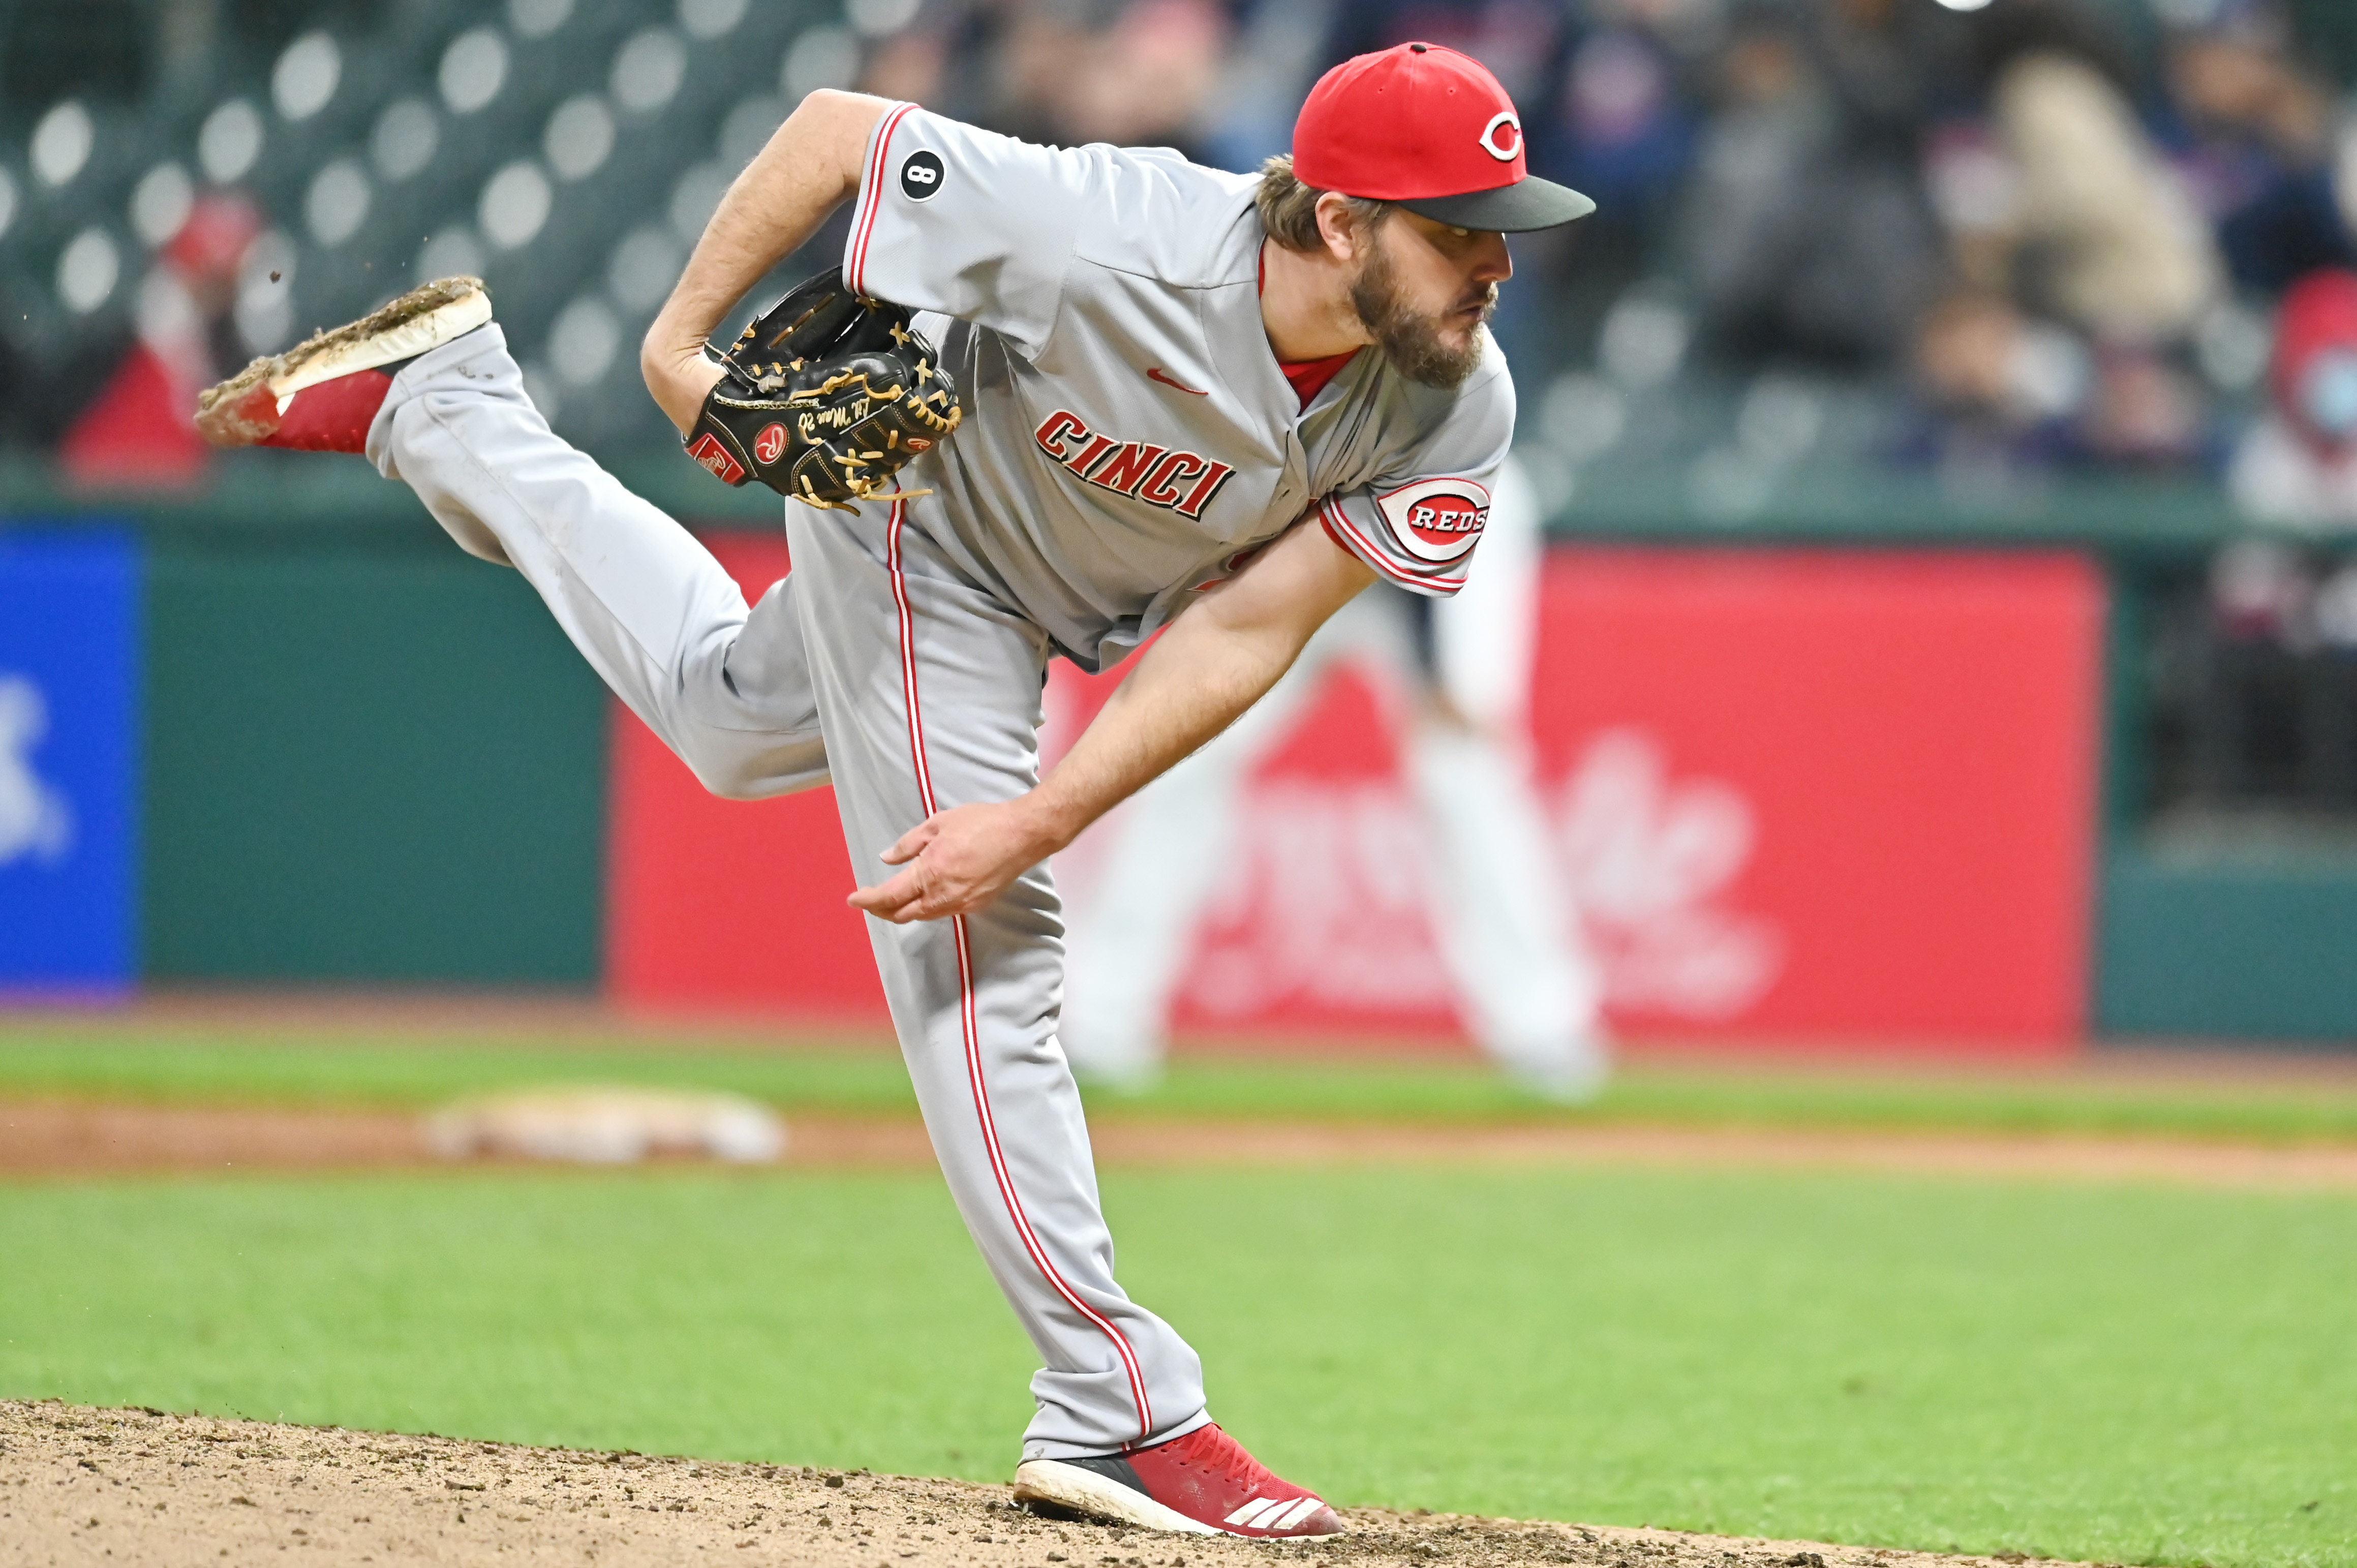 May 7, 2021; Cleveland, Ohio, USA; Cincinnati Reds starting pitcher Wade Miley (22) throws a pitch during the ninth inning against the Cleveland Indians at Progressive Field. Mandatory Credit: Ken Blaze-USA TODAY Sports